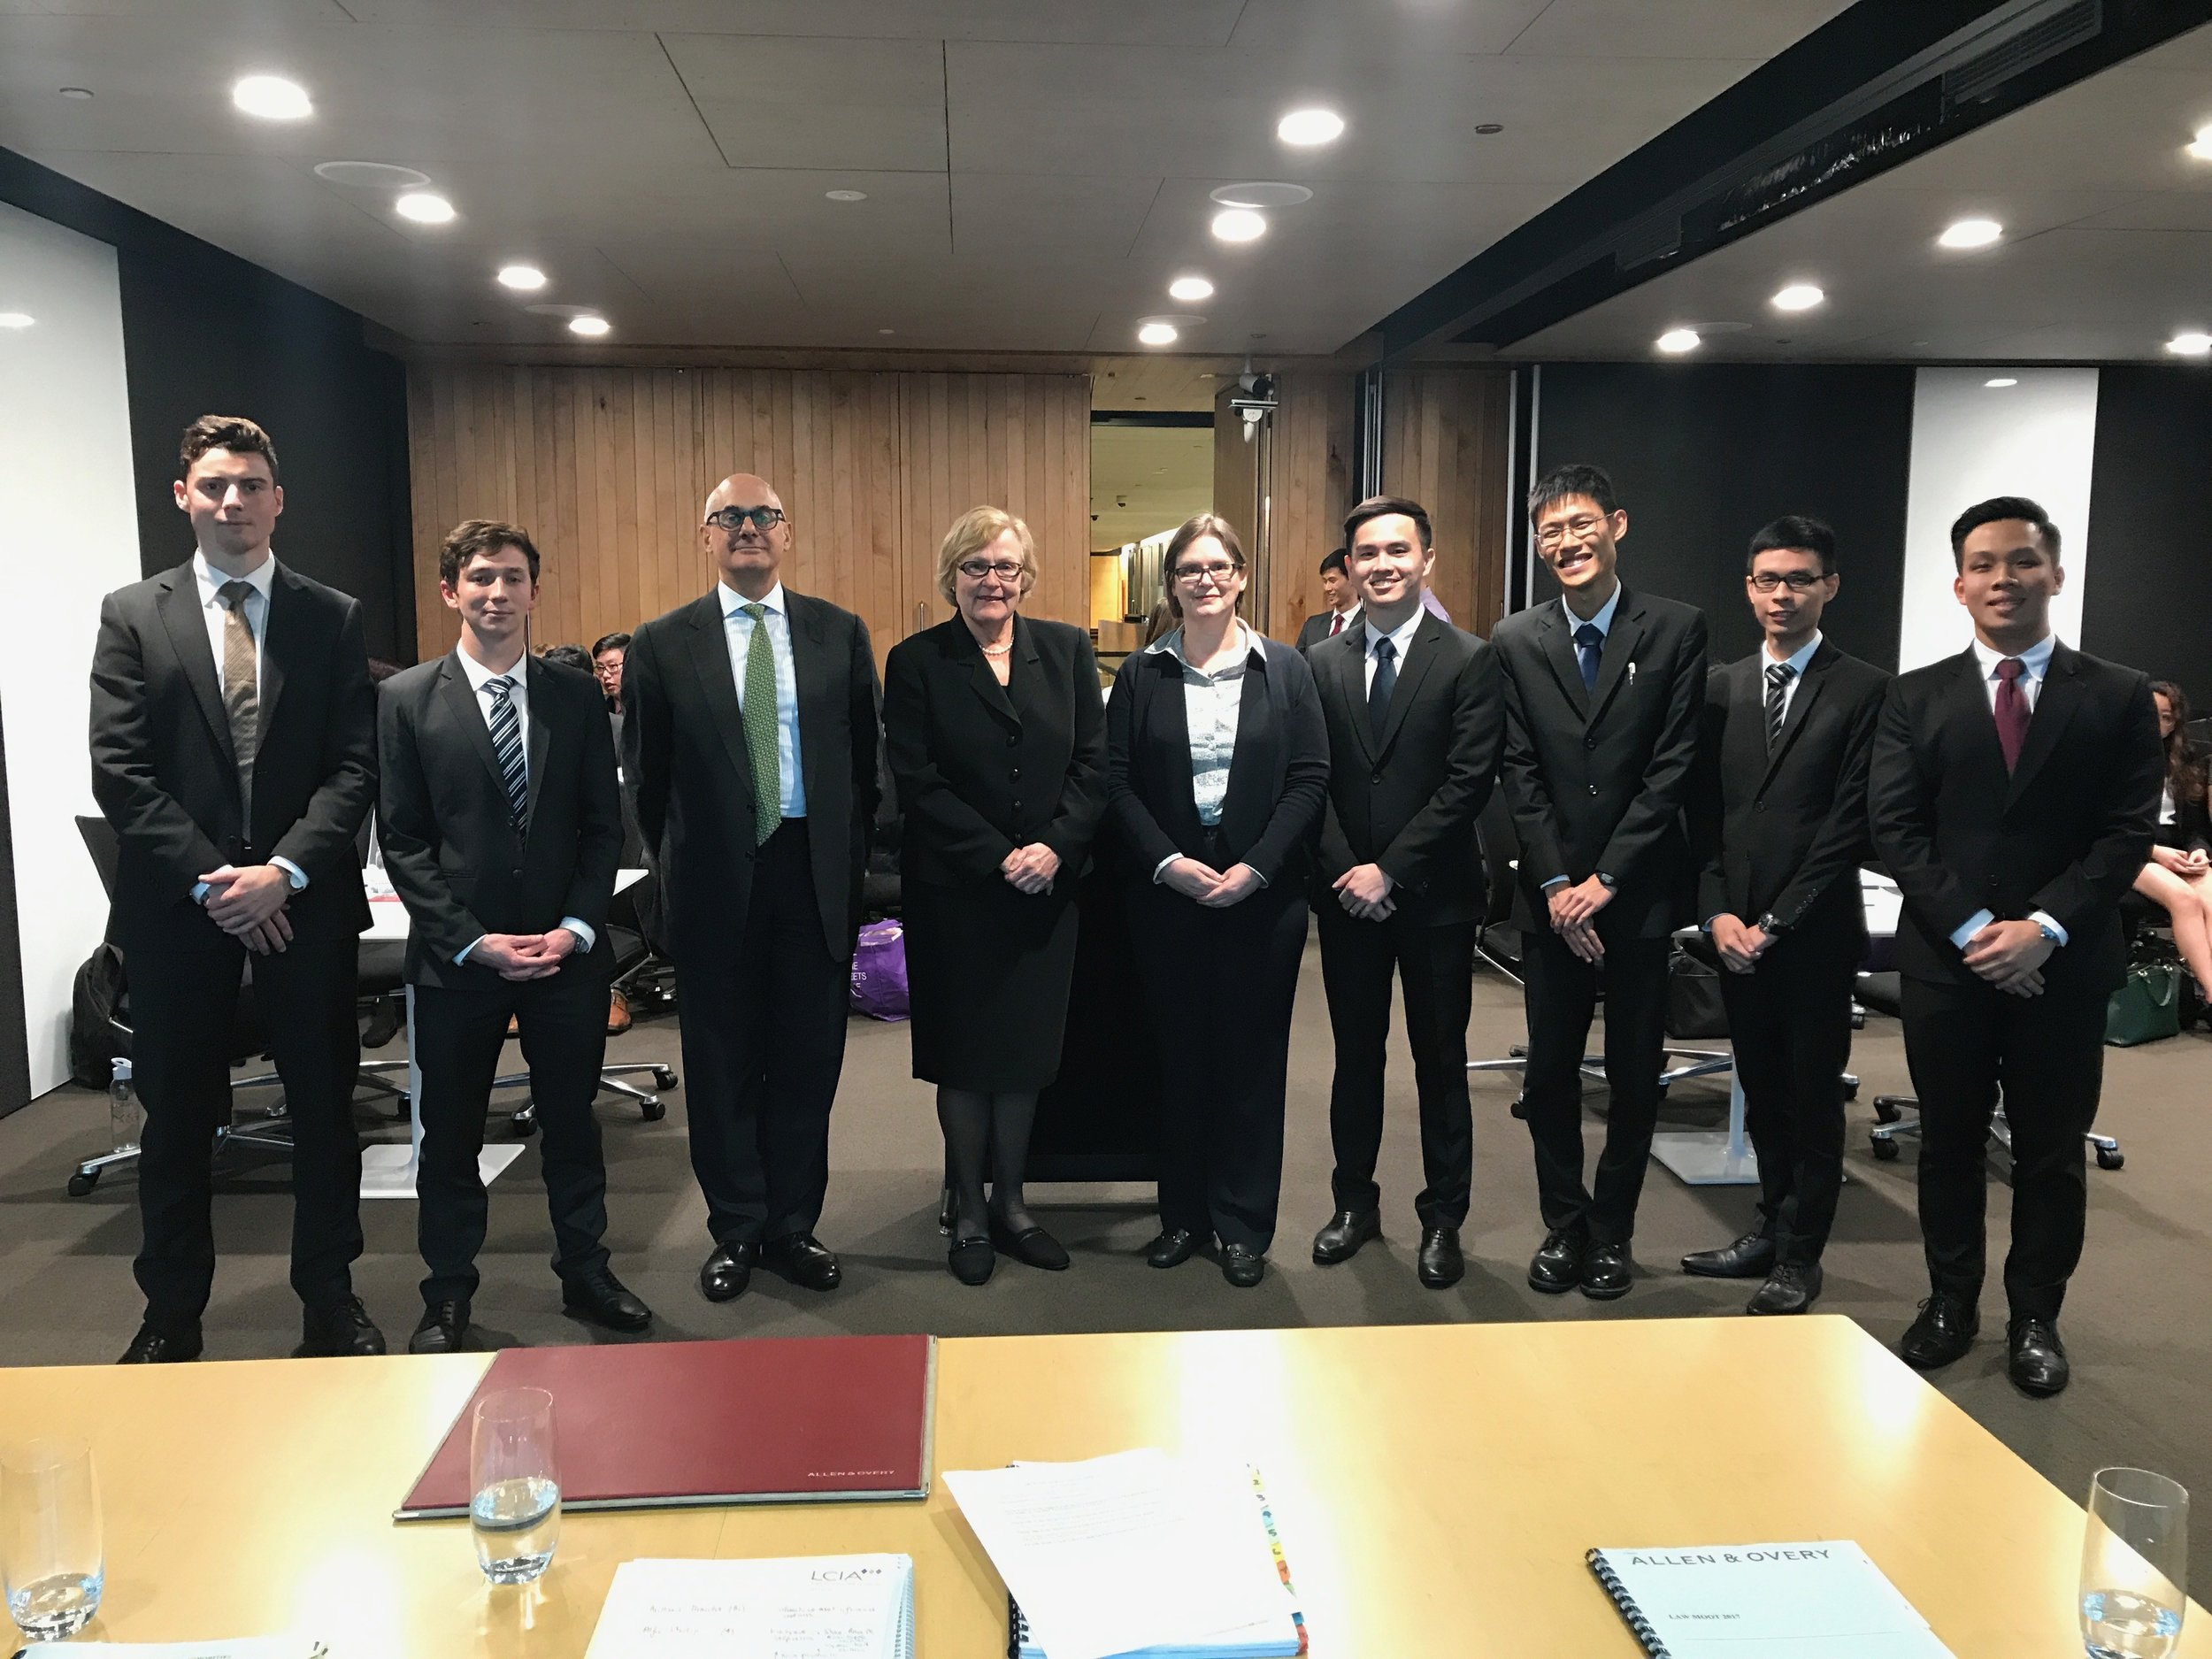 The grand finalists of the 2017 Allen & Overy Private Law Moot, from the National University of Singapore and the University of Otago, with The Honourable Patricia Bergin SC, International Judge of the Singapore International Commercial Court and formerly Chief Judge in Equity and Judge of Appeal of the Supreme Court of New South Wales; Professor Simone Degeling, UNSW Law; and John Samaha, Partner, Allen & Overy.